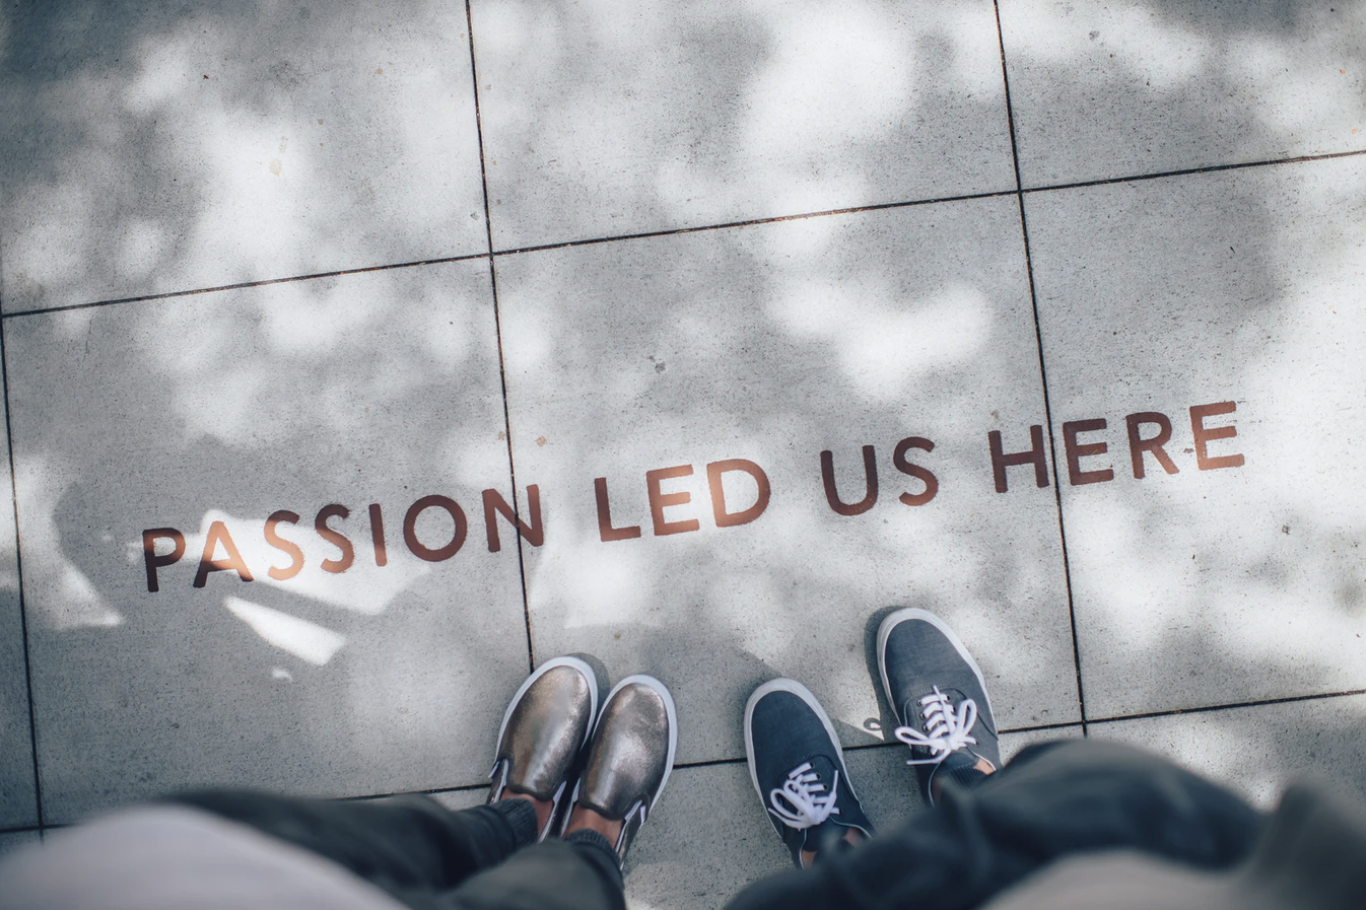 """A photo by Ian Schneider, featuring the shoes of two individuals standing next to a sign on the ground that reads """"Passion Led Us Here."""""""